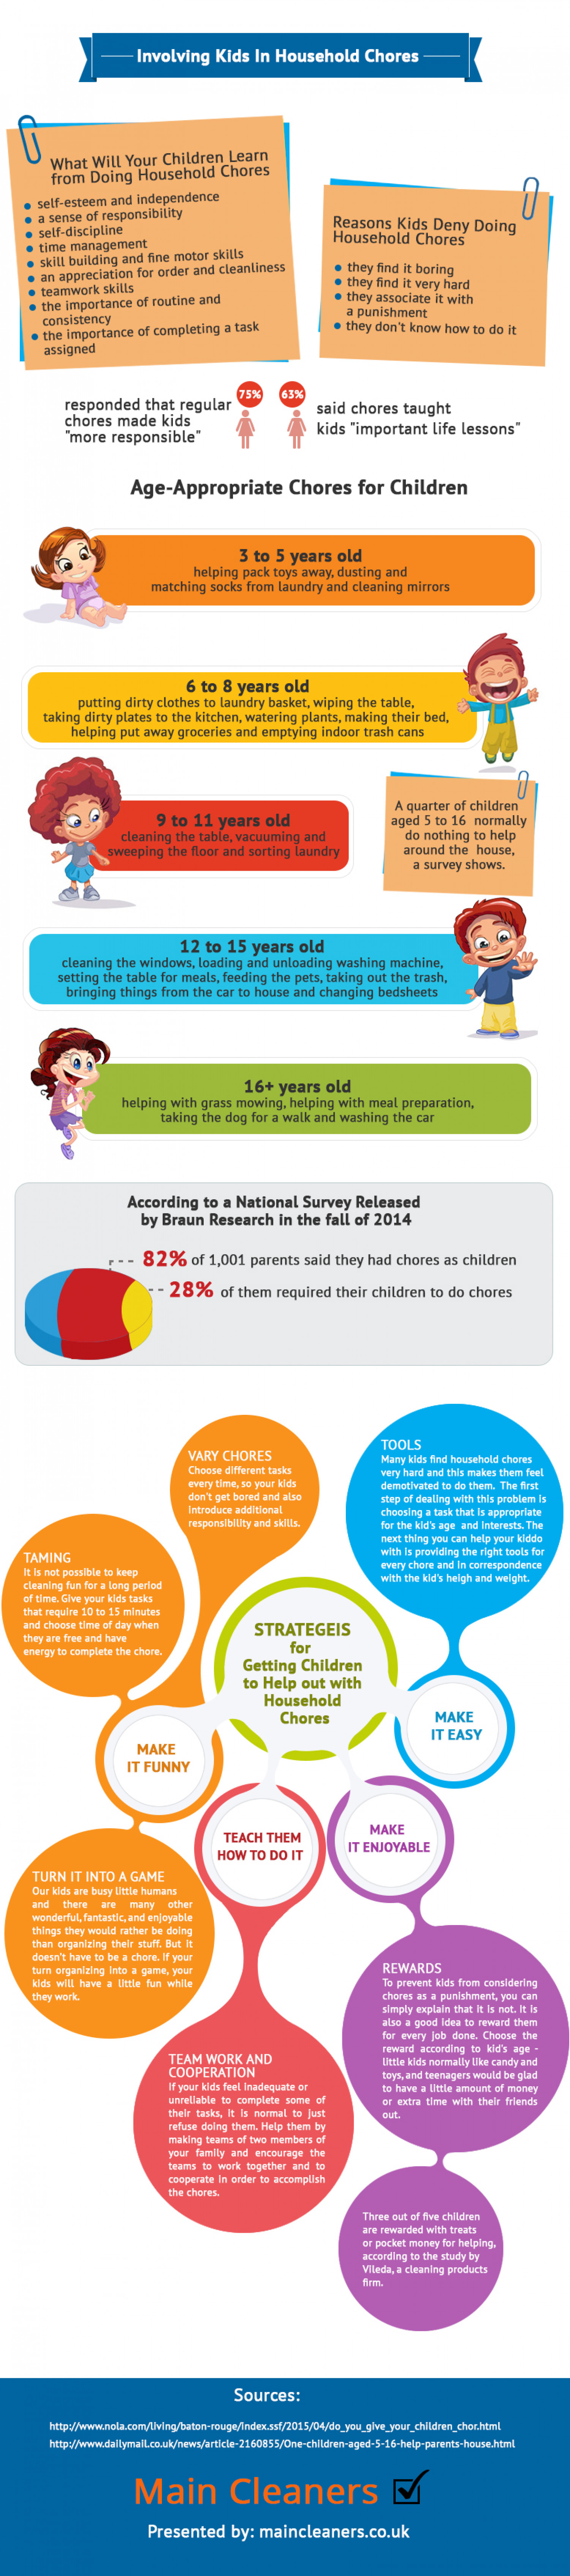 Involving kids in Household Chores Infographic